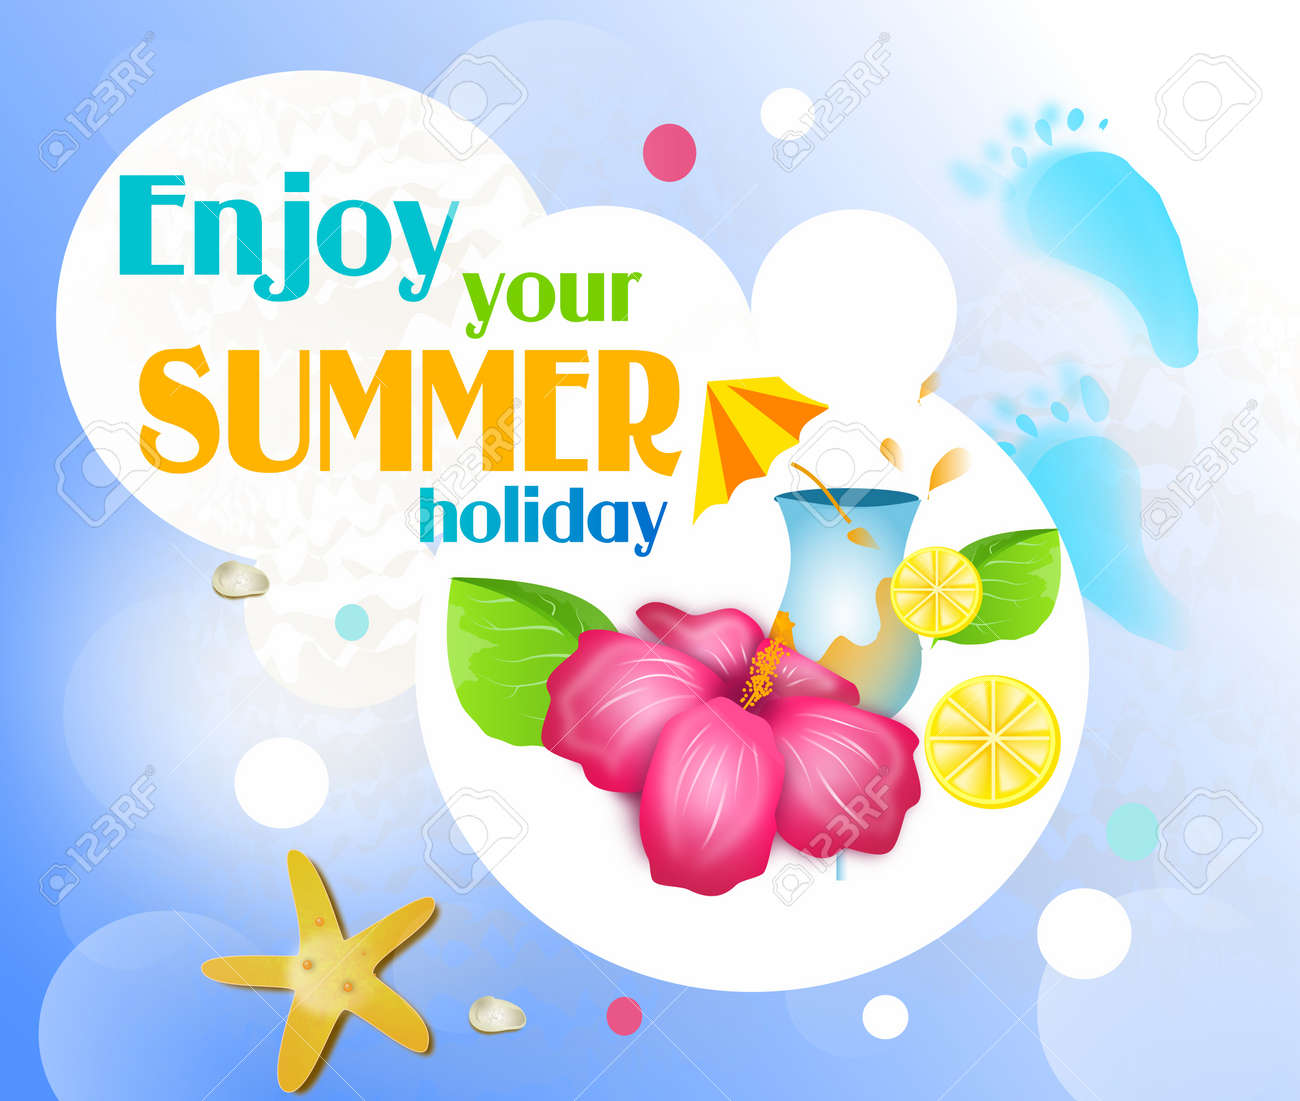 summer card with greeting enjoy your summer holiday stock photo